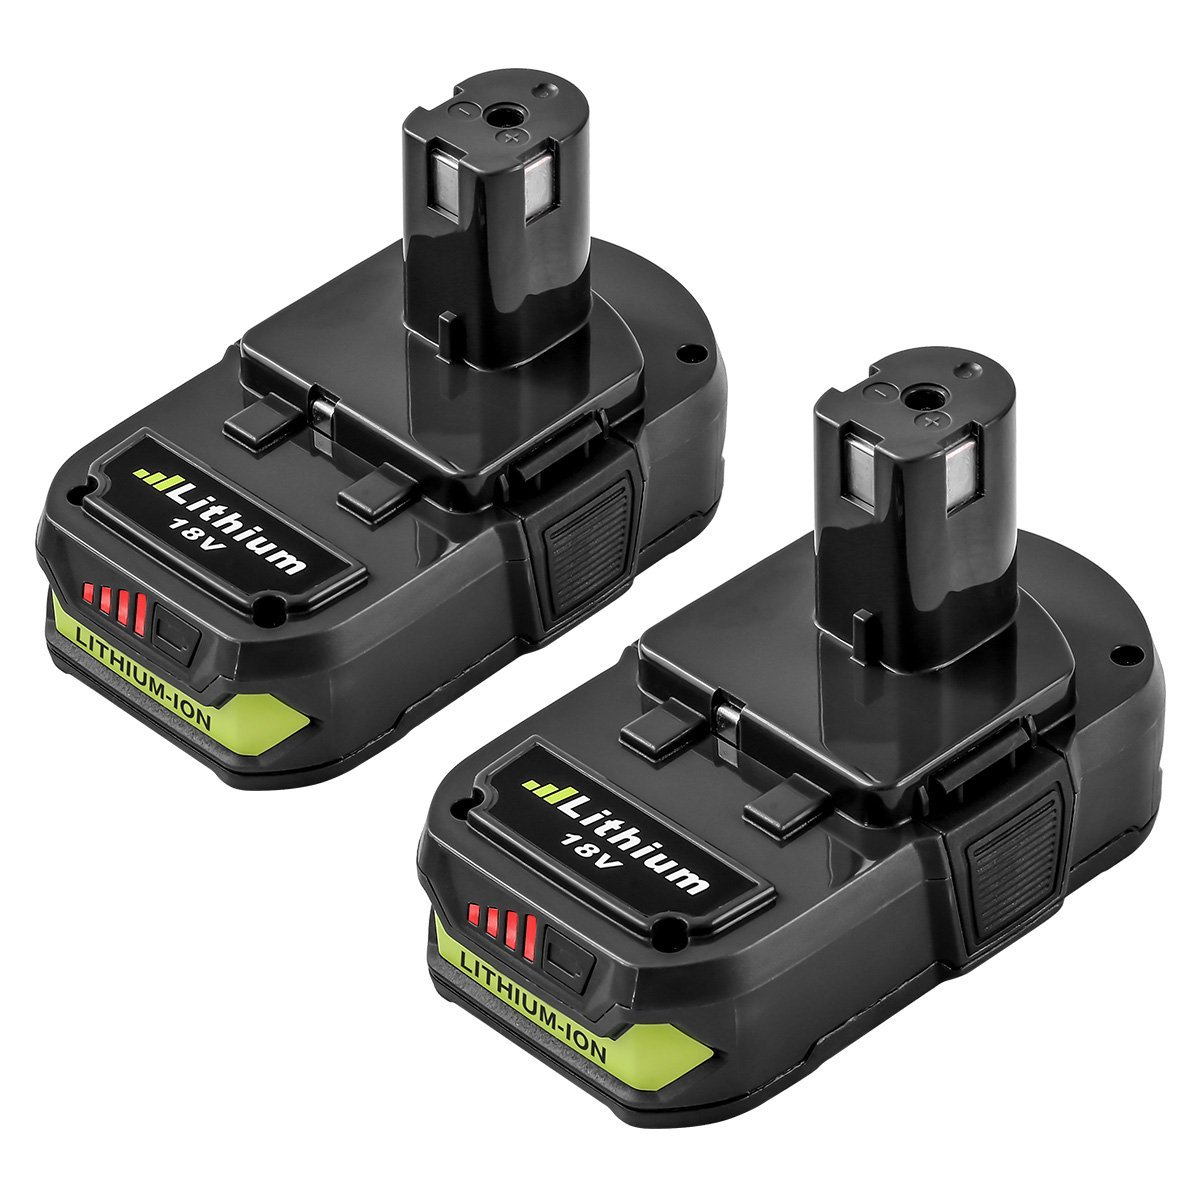 P107 2.5Ah Replace for Ryobi 18V Battery ONE+ P102 P103 P104 P105 P108 P109 Cordless Power Tools 2 Packs